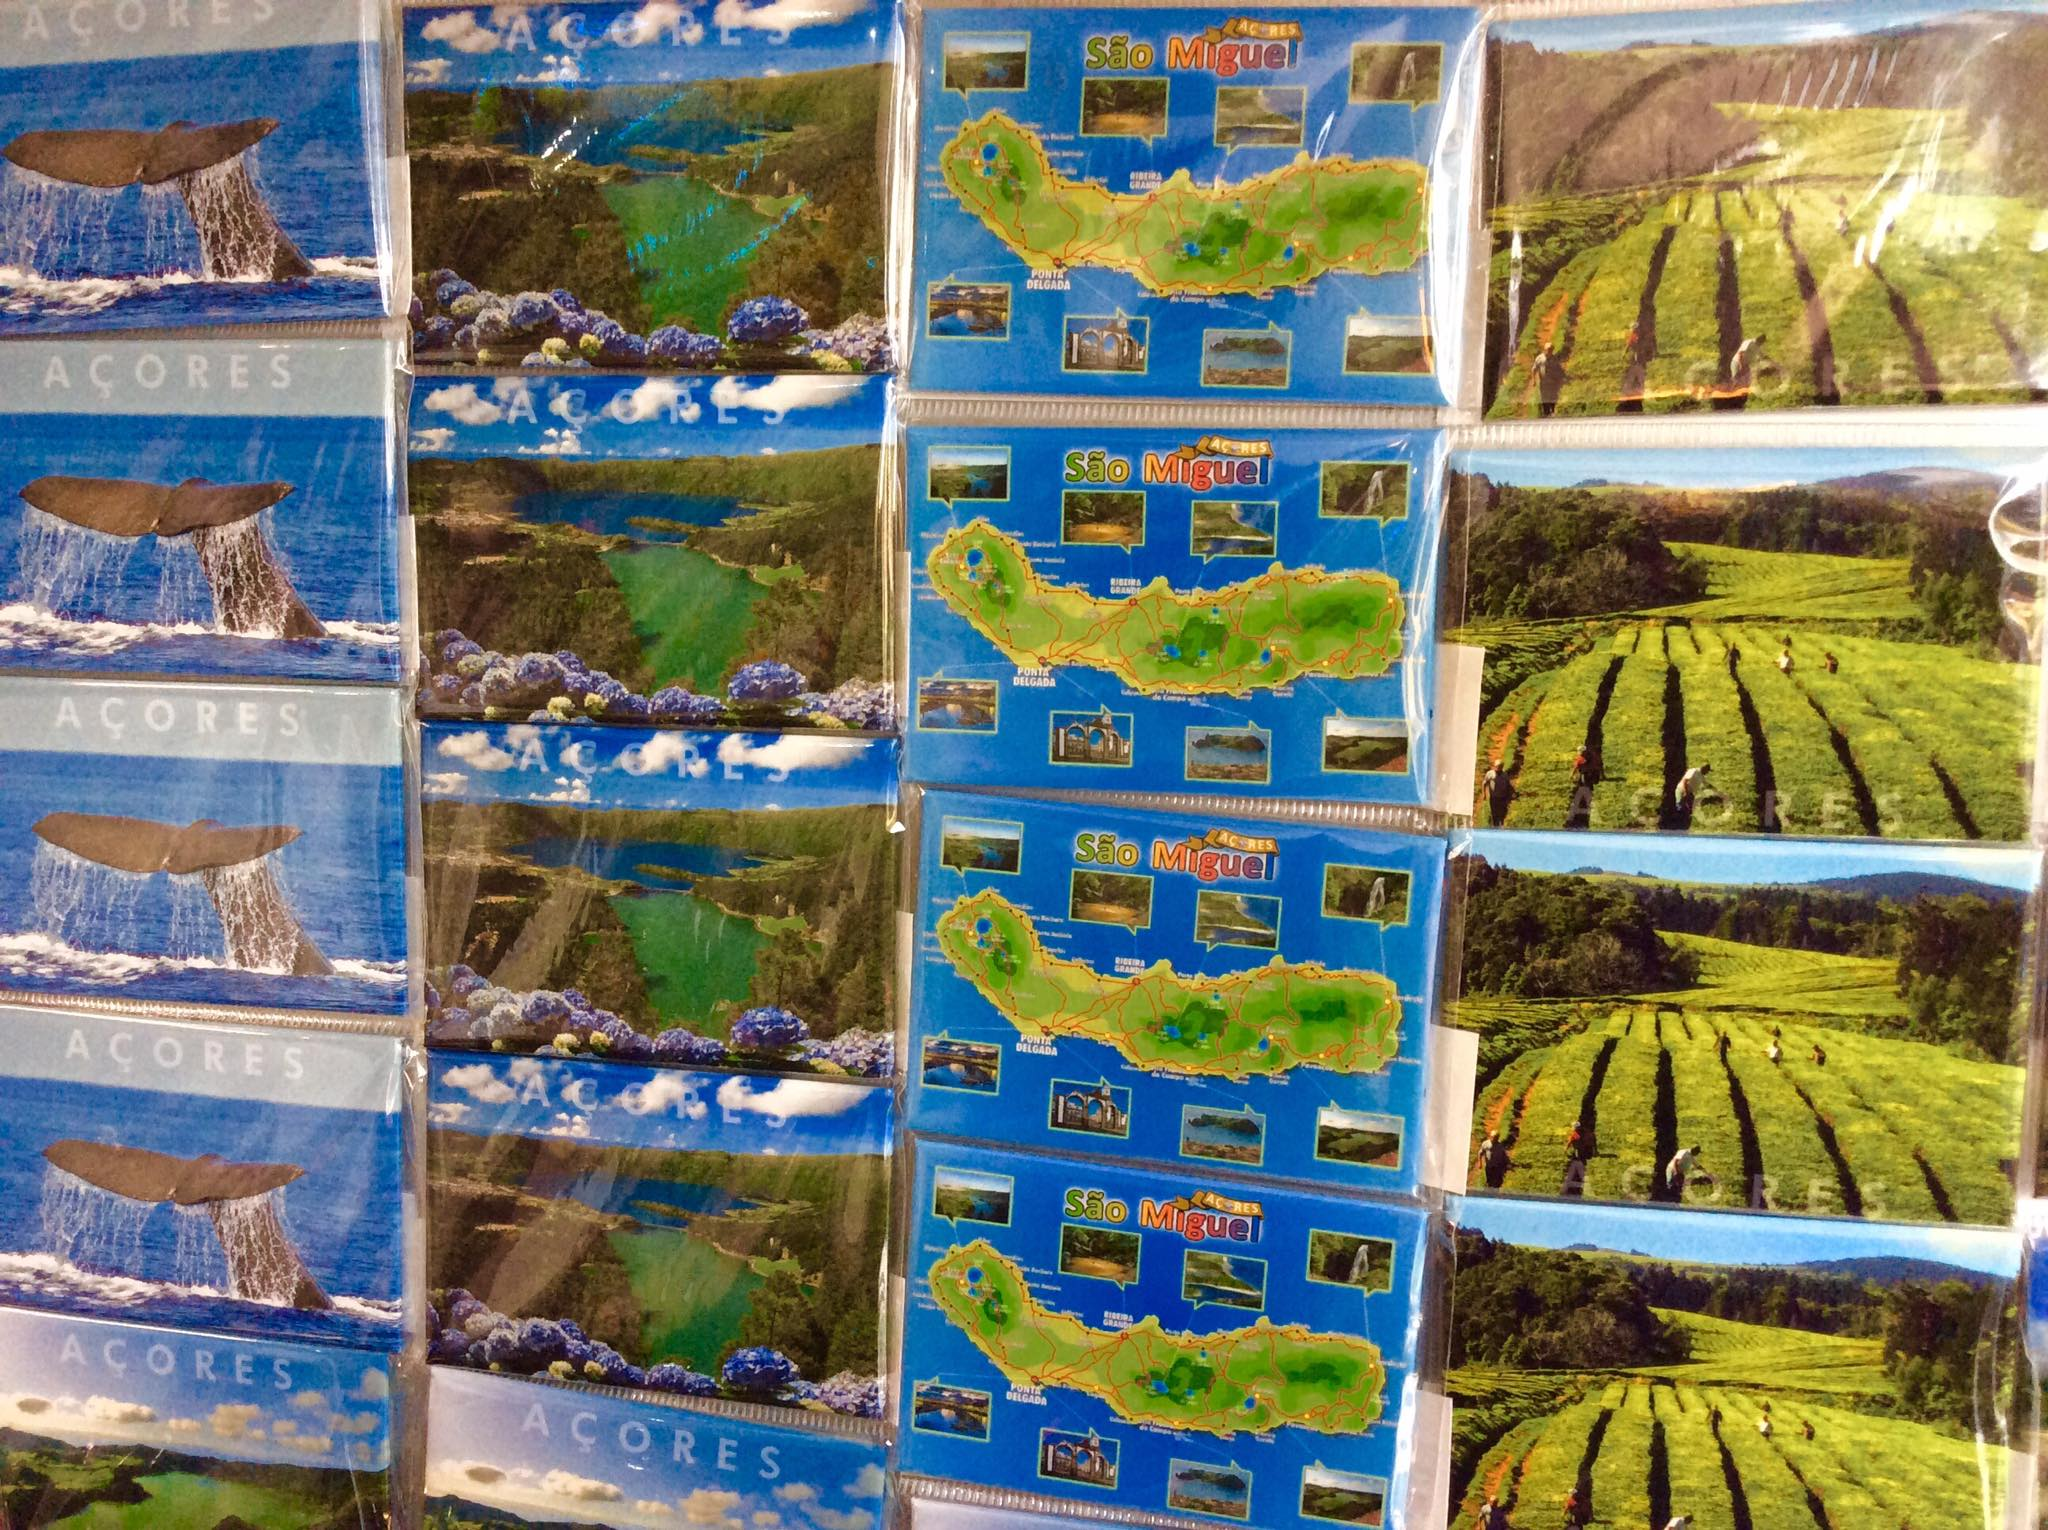 Azores Islands Books and Map